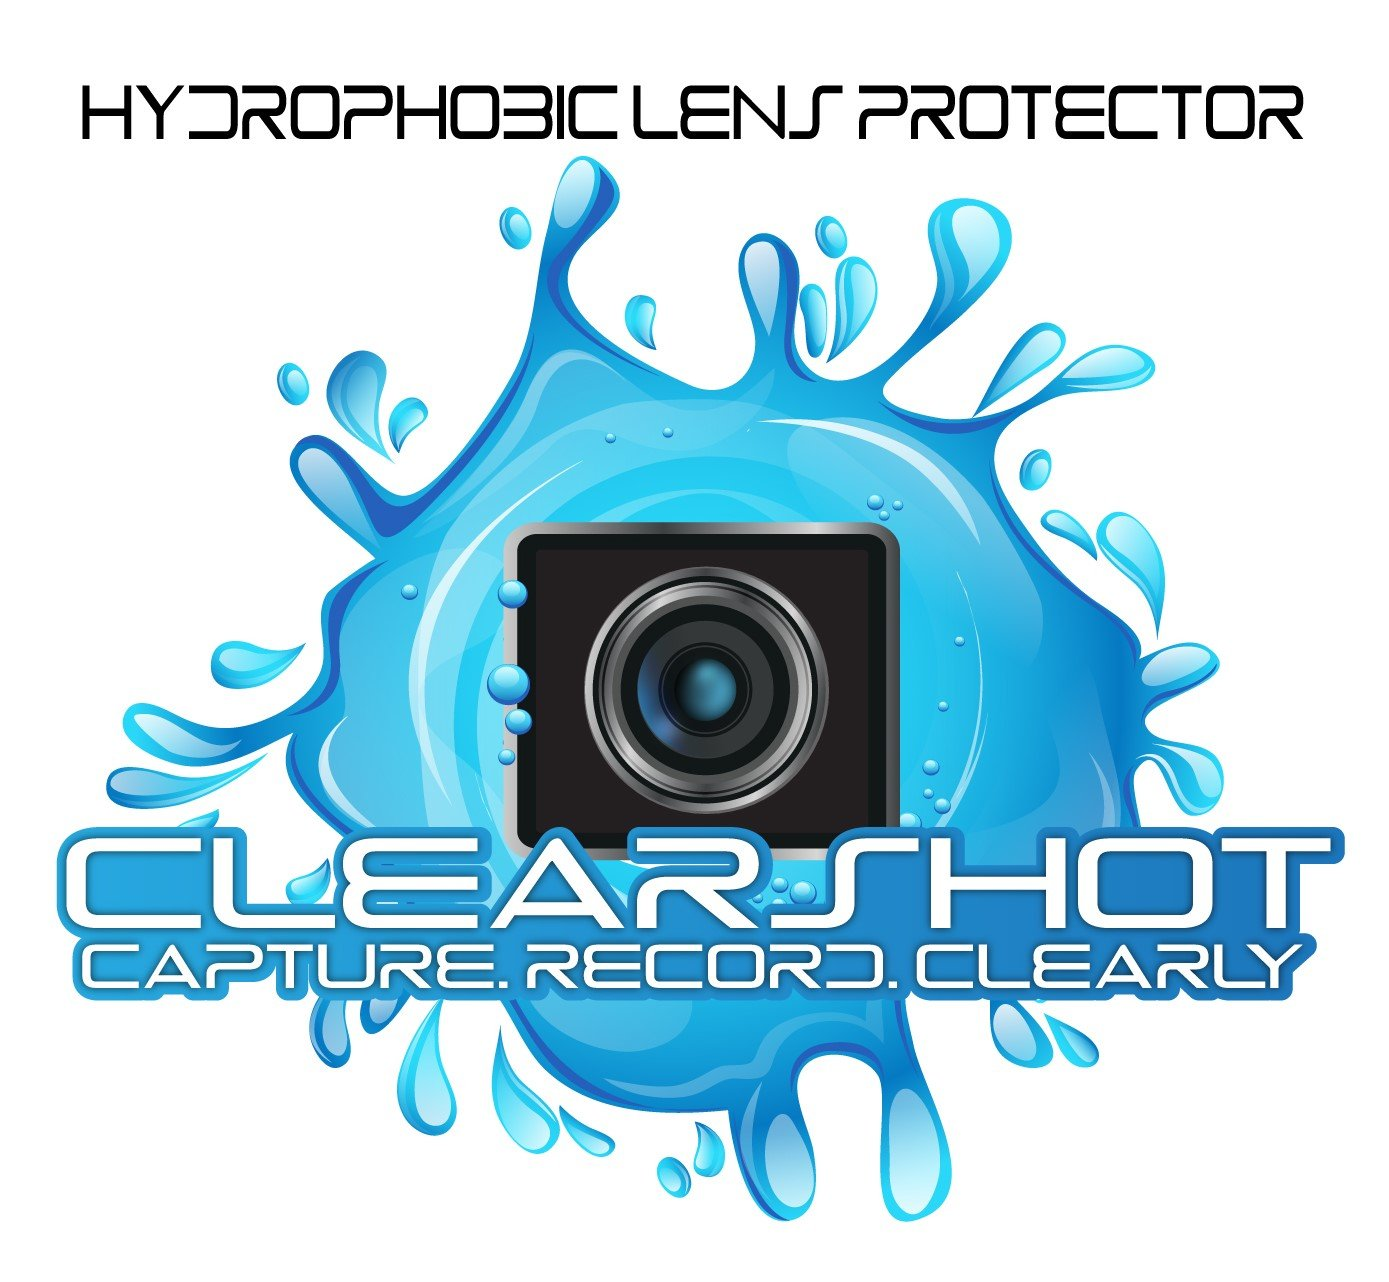 Hydrophobic Lens and Screen Protector for GoPro Hero 5/6/7 Black with Free Silicone Lens Cover. Anti-Scratch, Water/Snow Repellent, Touchscreen Compatible, Lasts up to 6 Months. CoreBrands